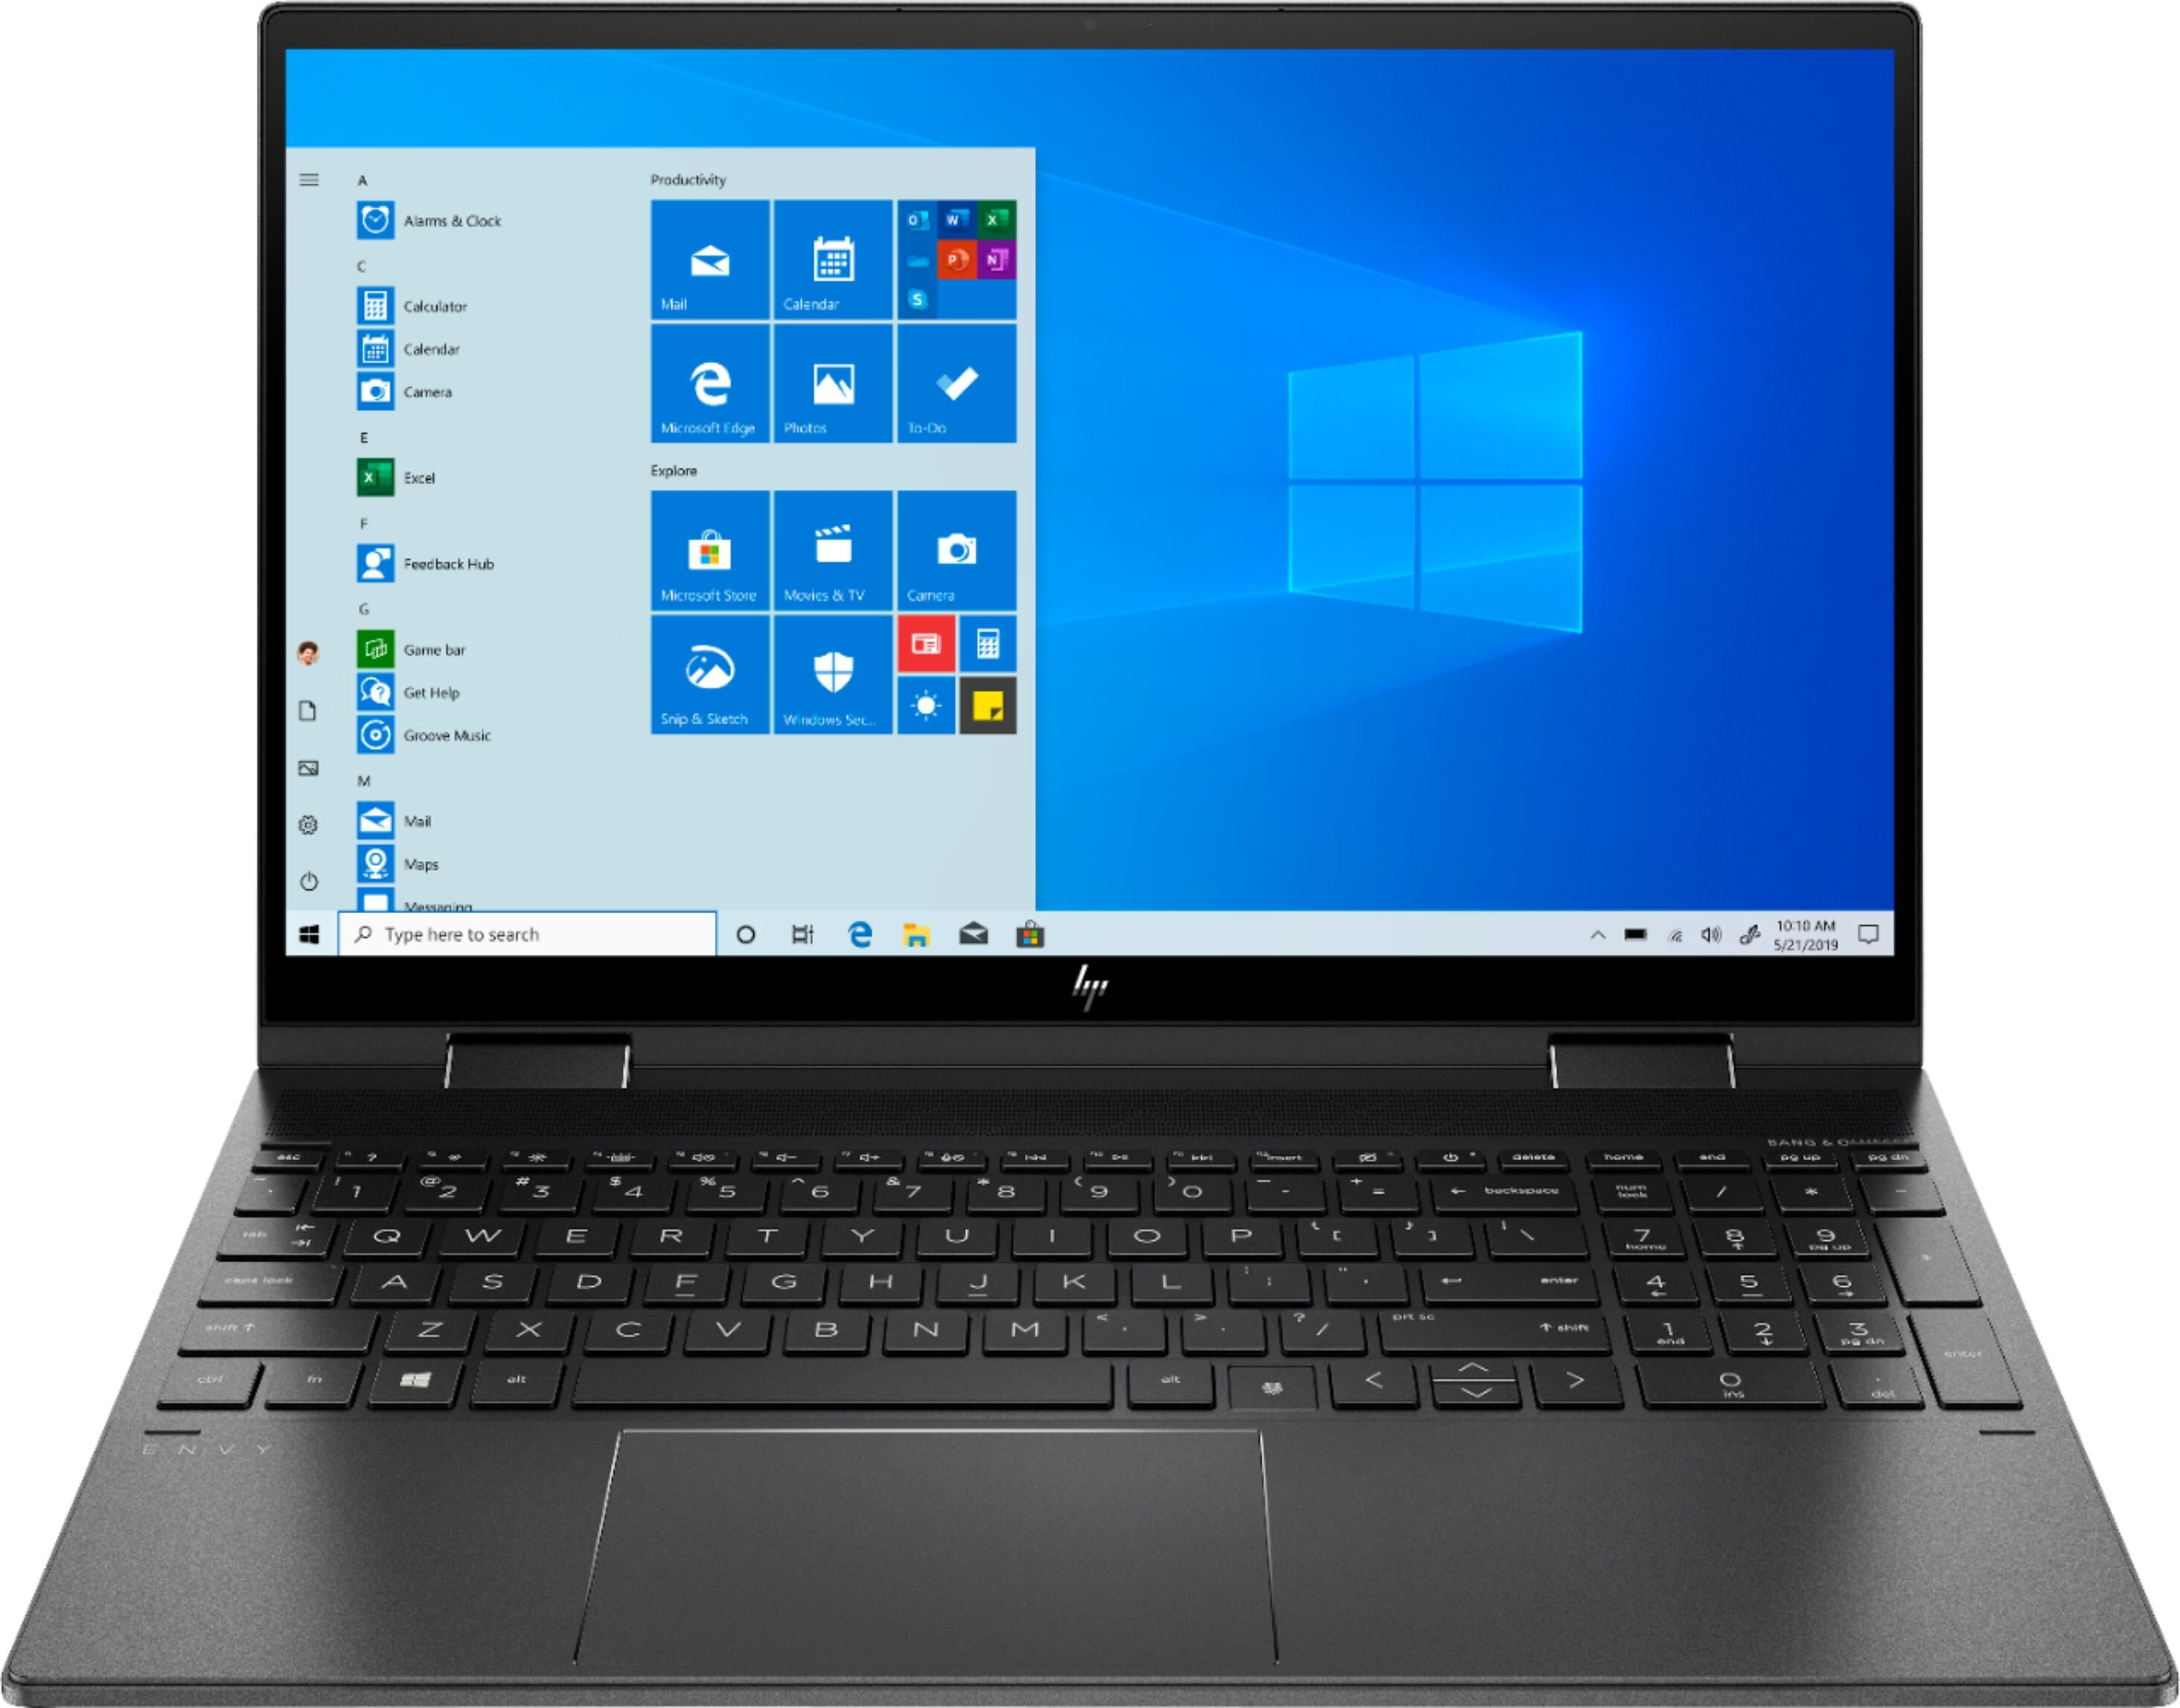 HP ENVY x360 15M-EE0013DX Laptop (9HZ86UA)